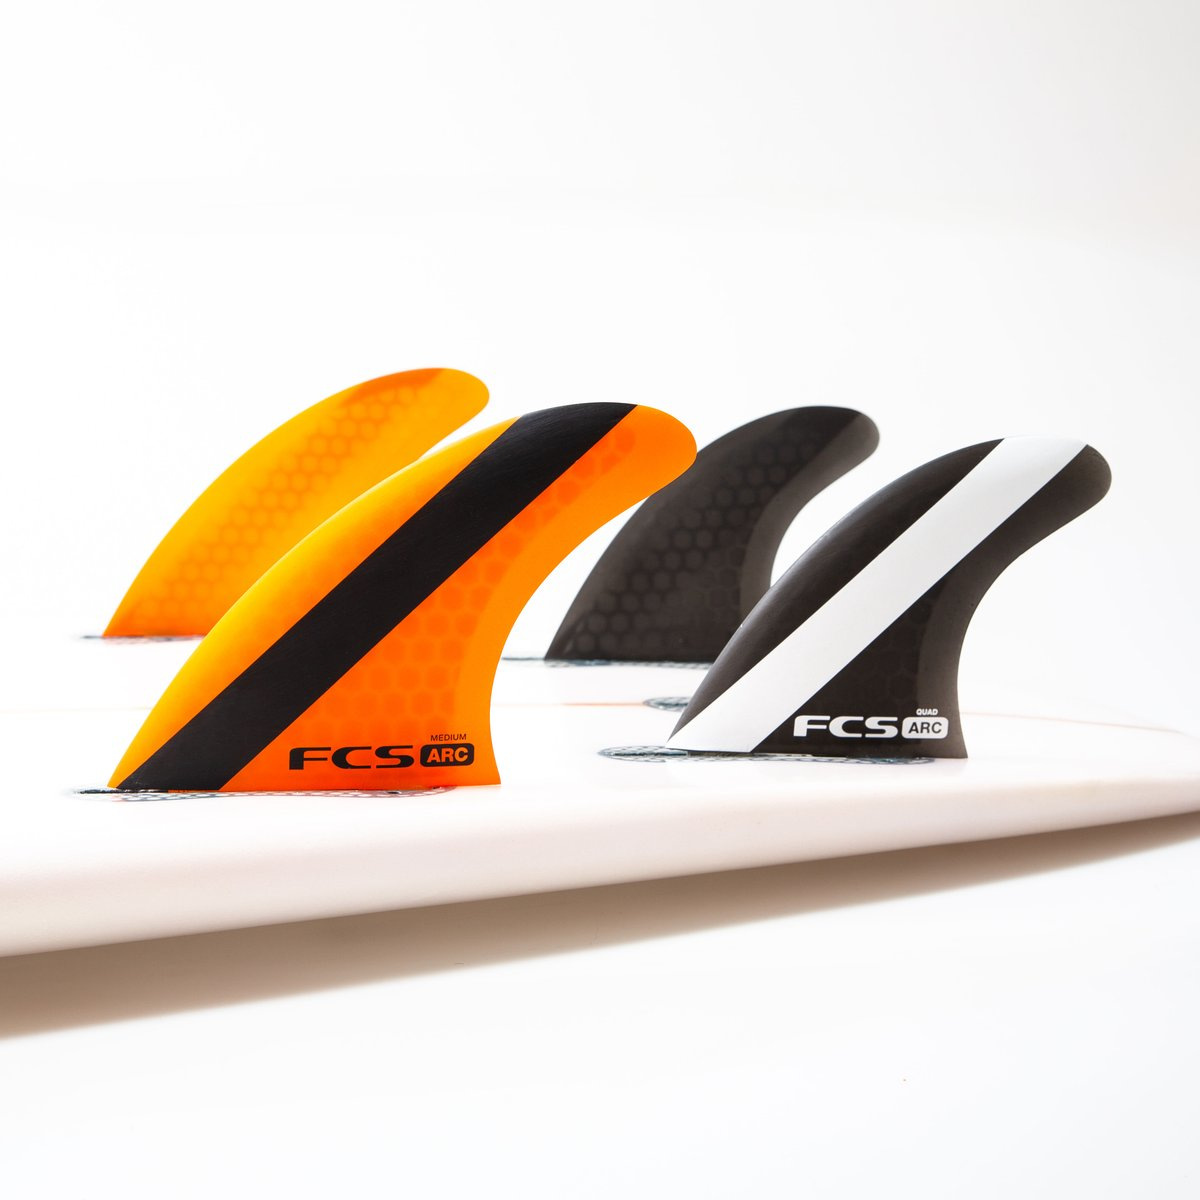 FCS I Arc Medium Tri-Quad Fin Set